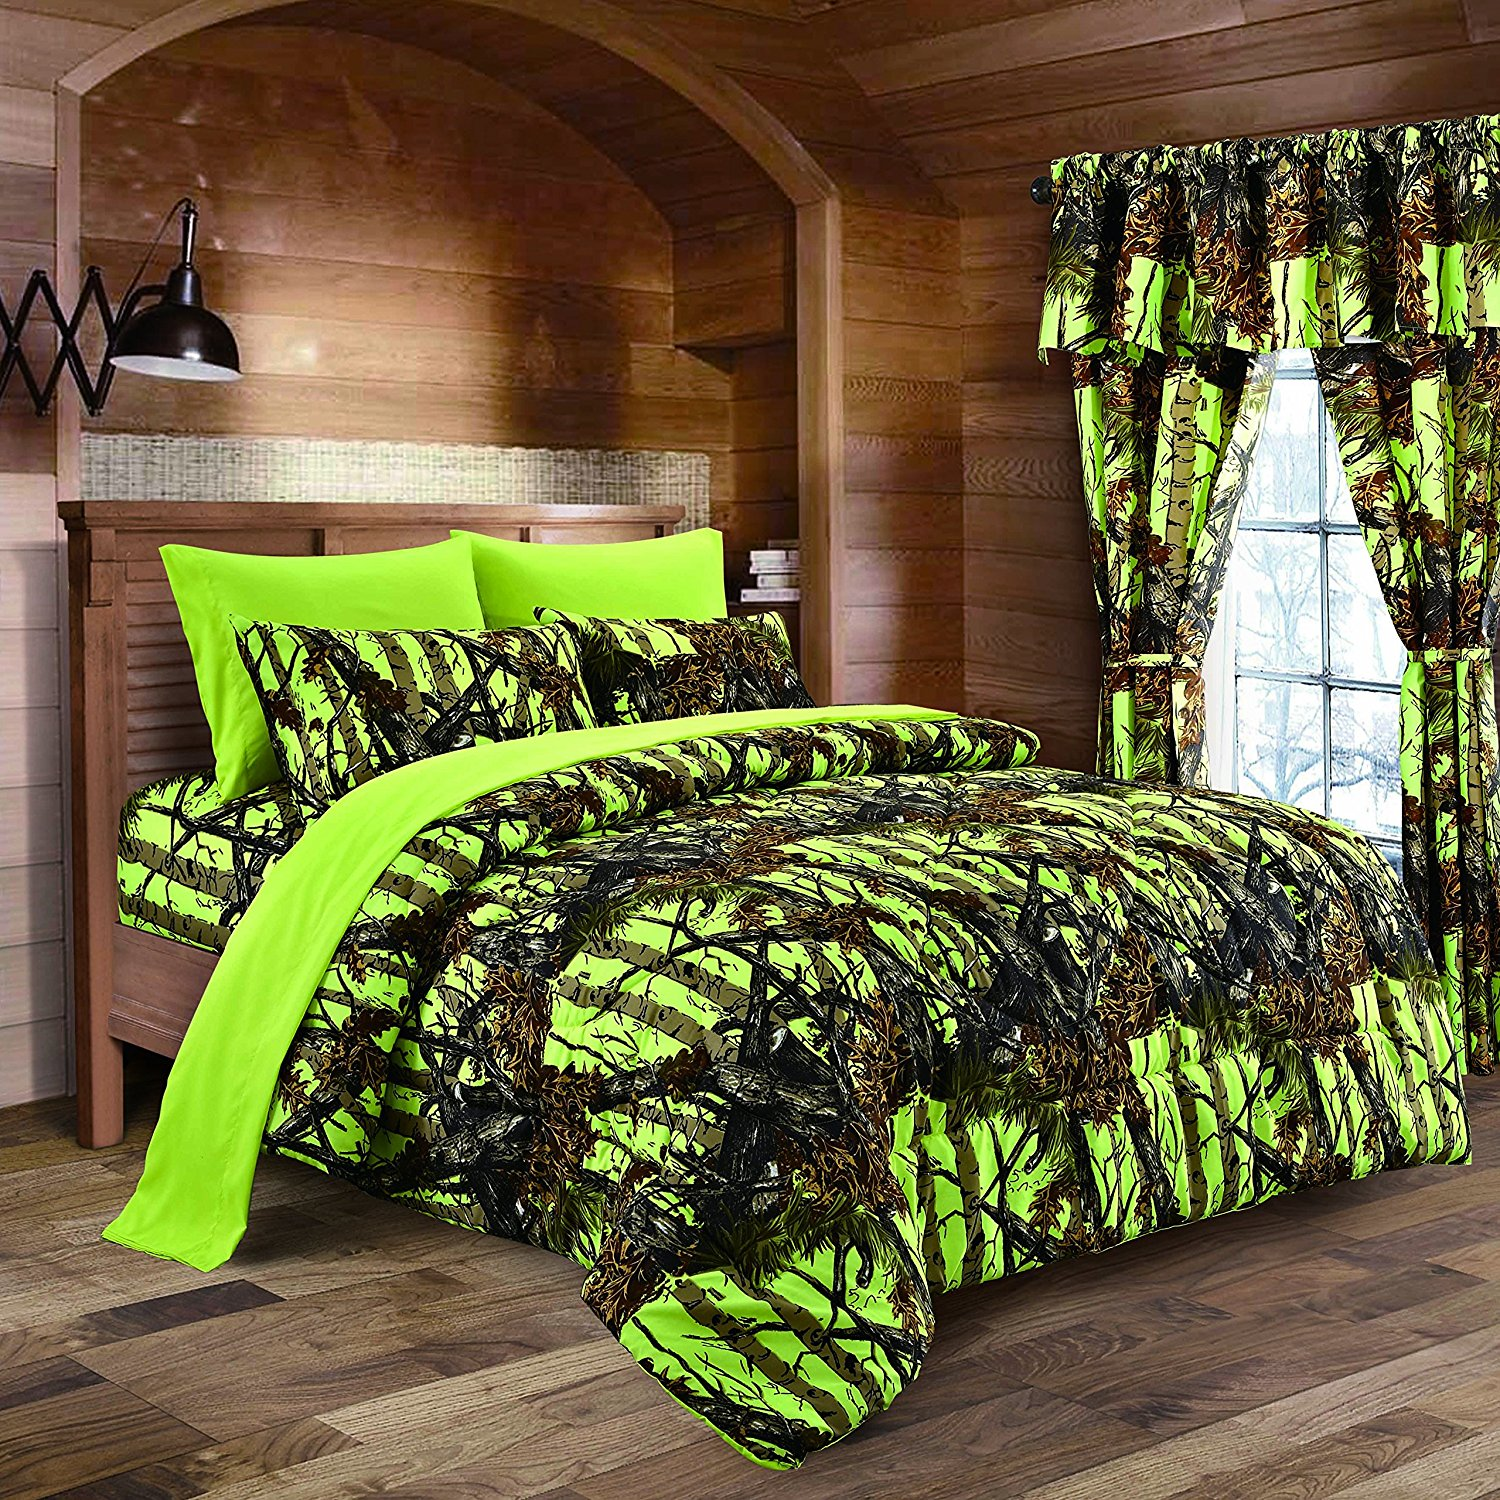 The Woods Lime Green Camouflage Full 8pc Premium Luxury Comforter, Sheet, Pillowcases, and Bed Skirt Set by Regal Comfort Camo Bedding Set For Hunters Cabin or Rustic Lodge Teens Boys and Girls